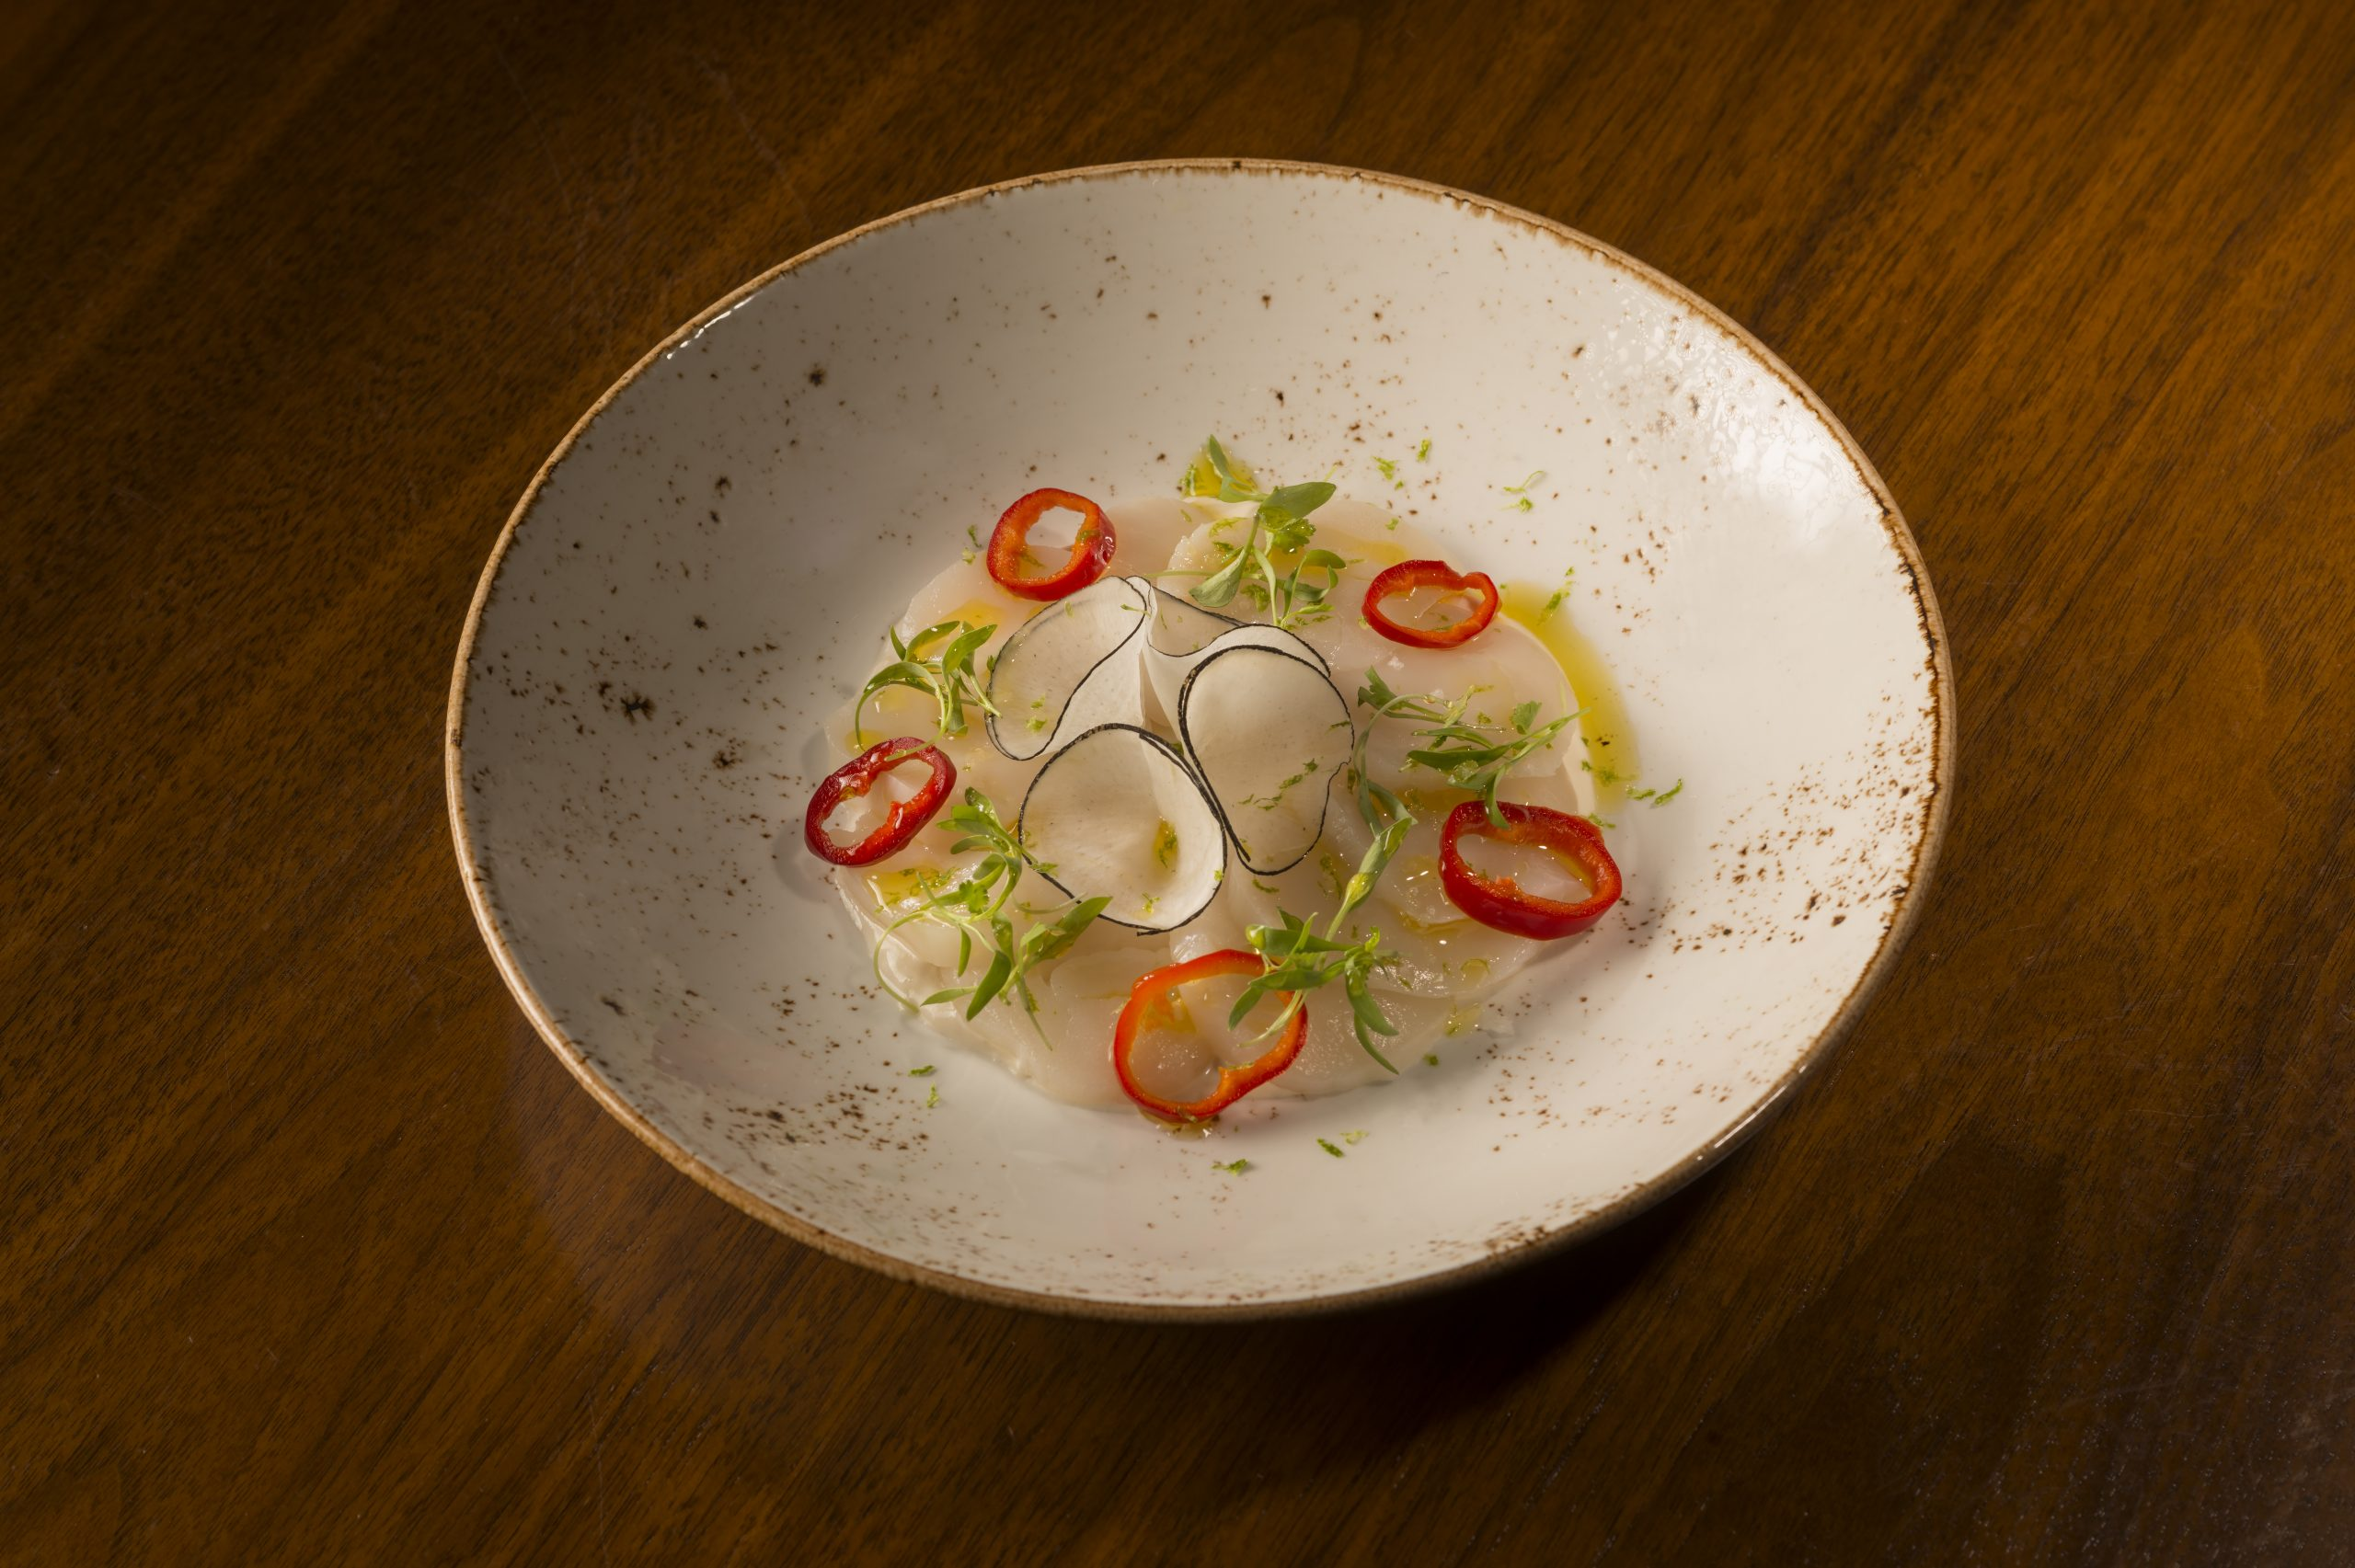 Scallop Crudo at Sociale Cafe and Bar